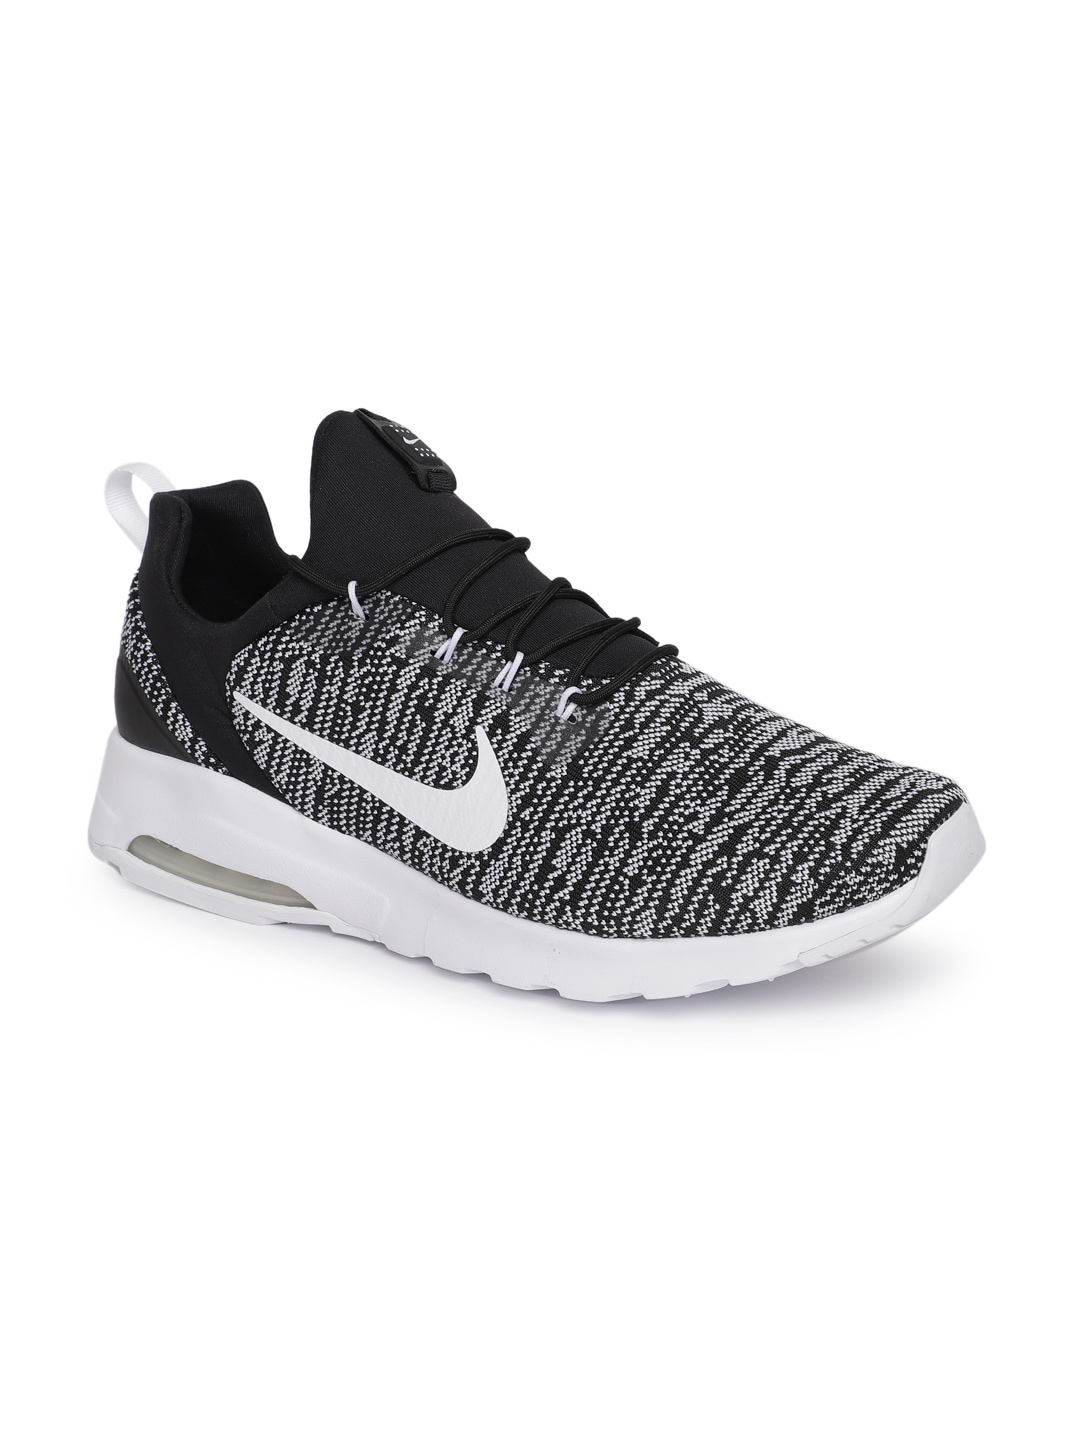 new product af86f 6eeca Nike Air Max - Buy Nike Air Max Shoes, Bags, Sneakers in India